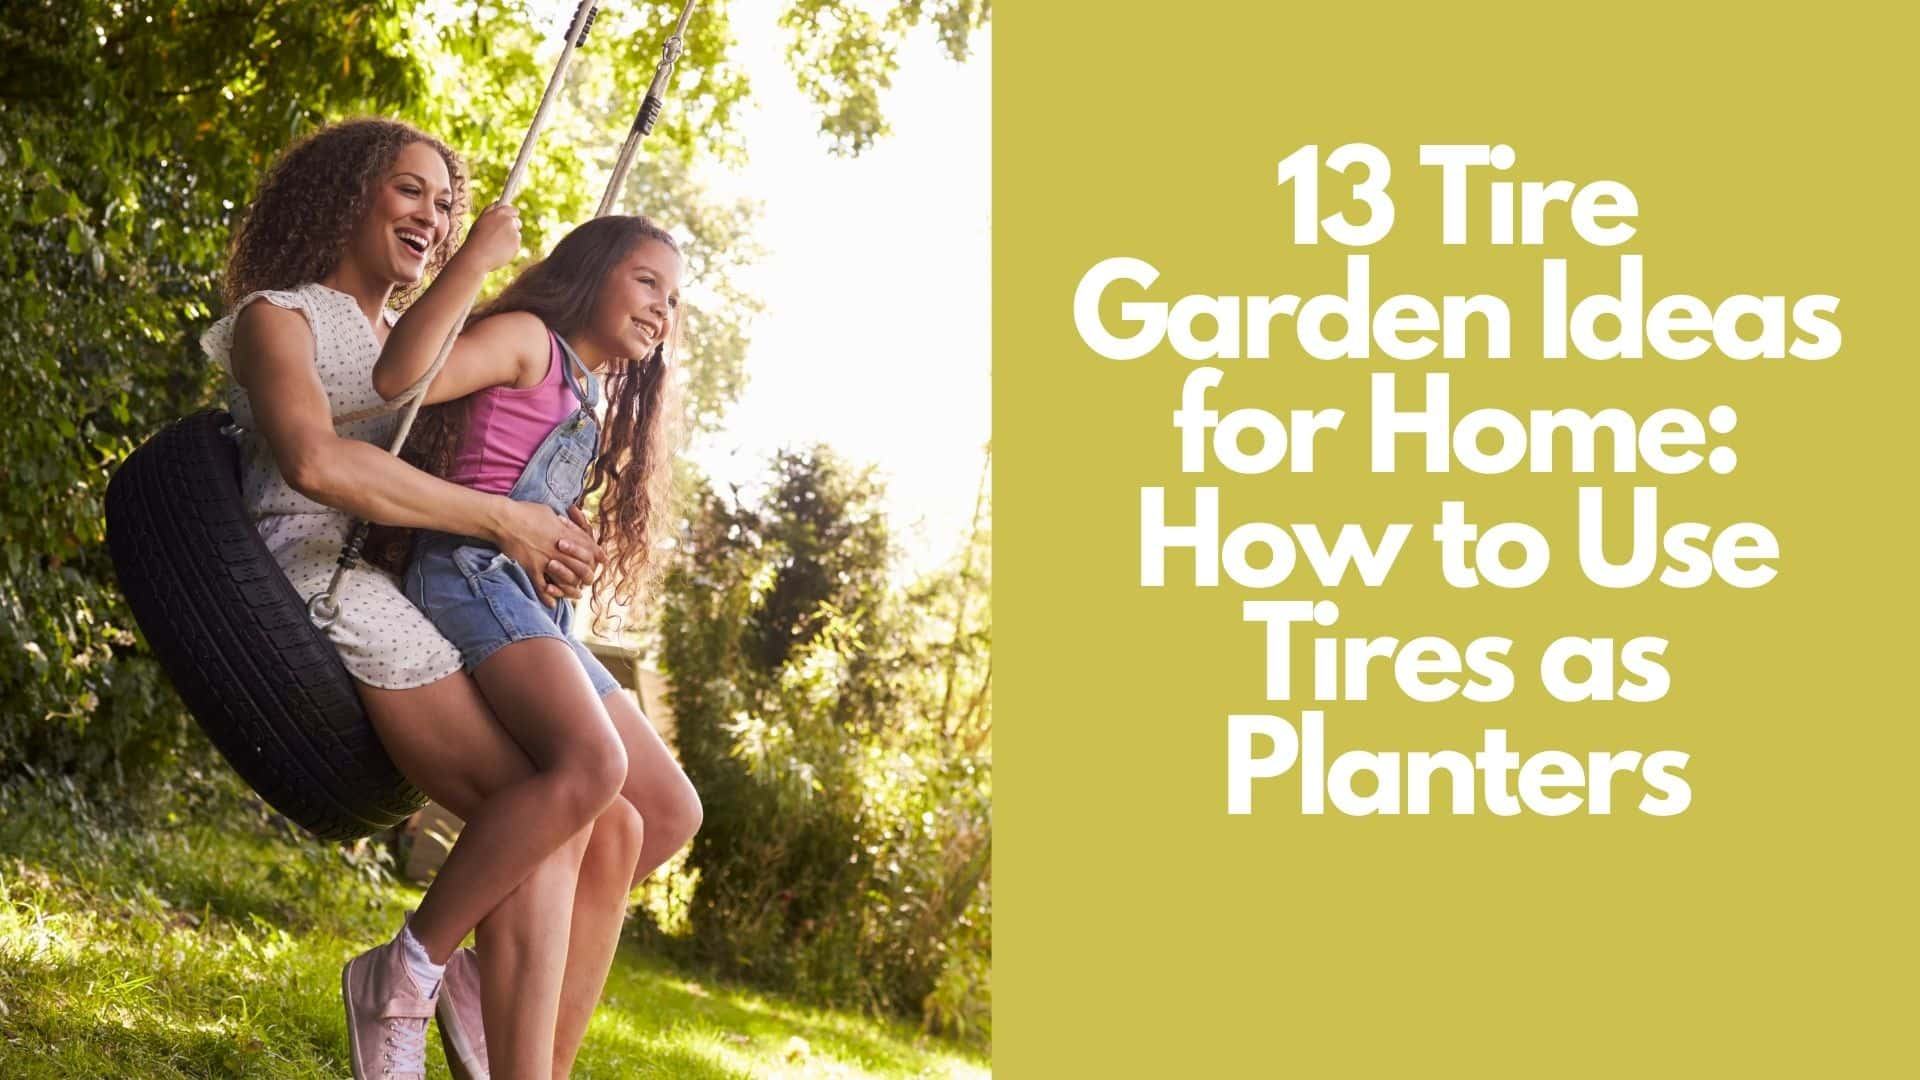 13 Tire Garden Ideas for Home: How to Use Tires as Planters